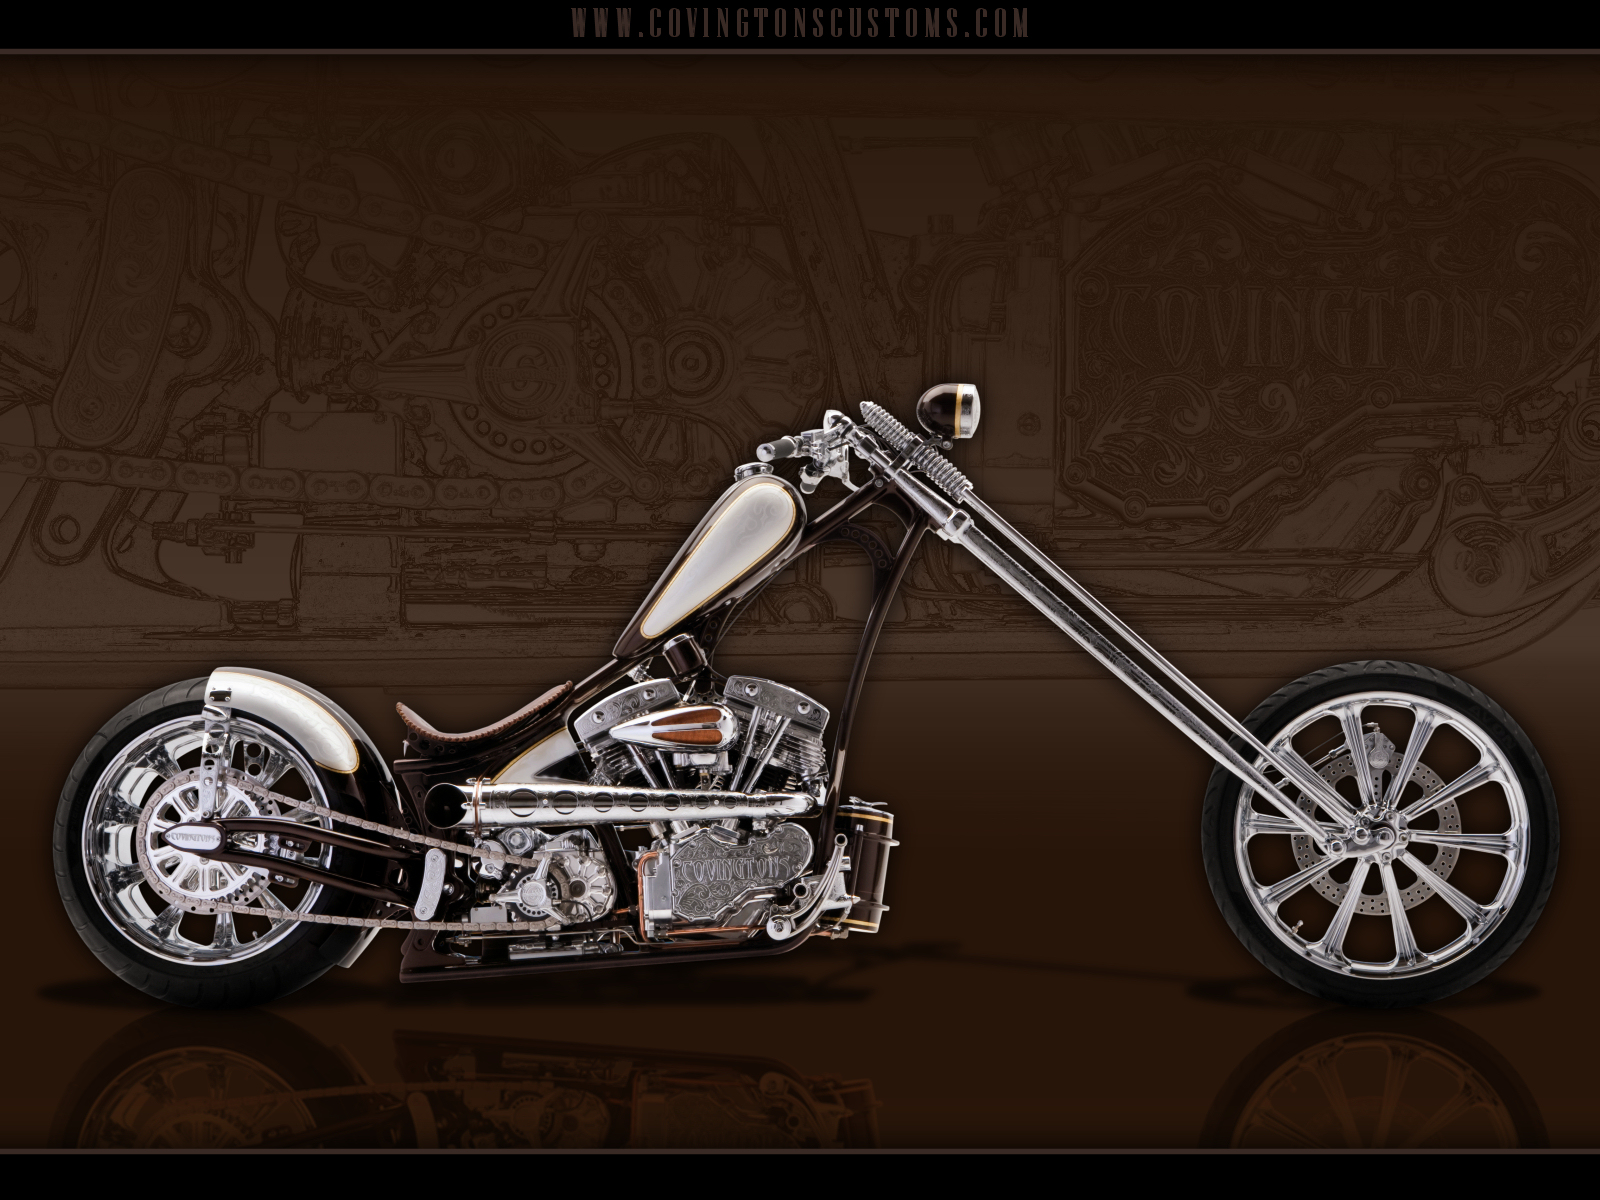 Covingtons Chopper 2011 #1